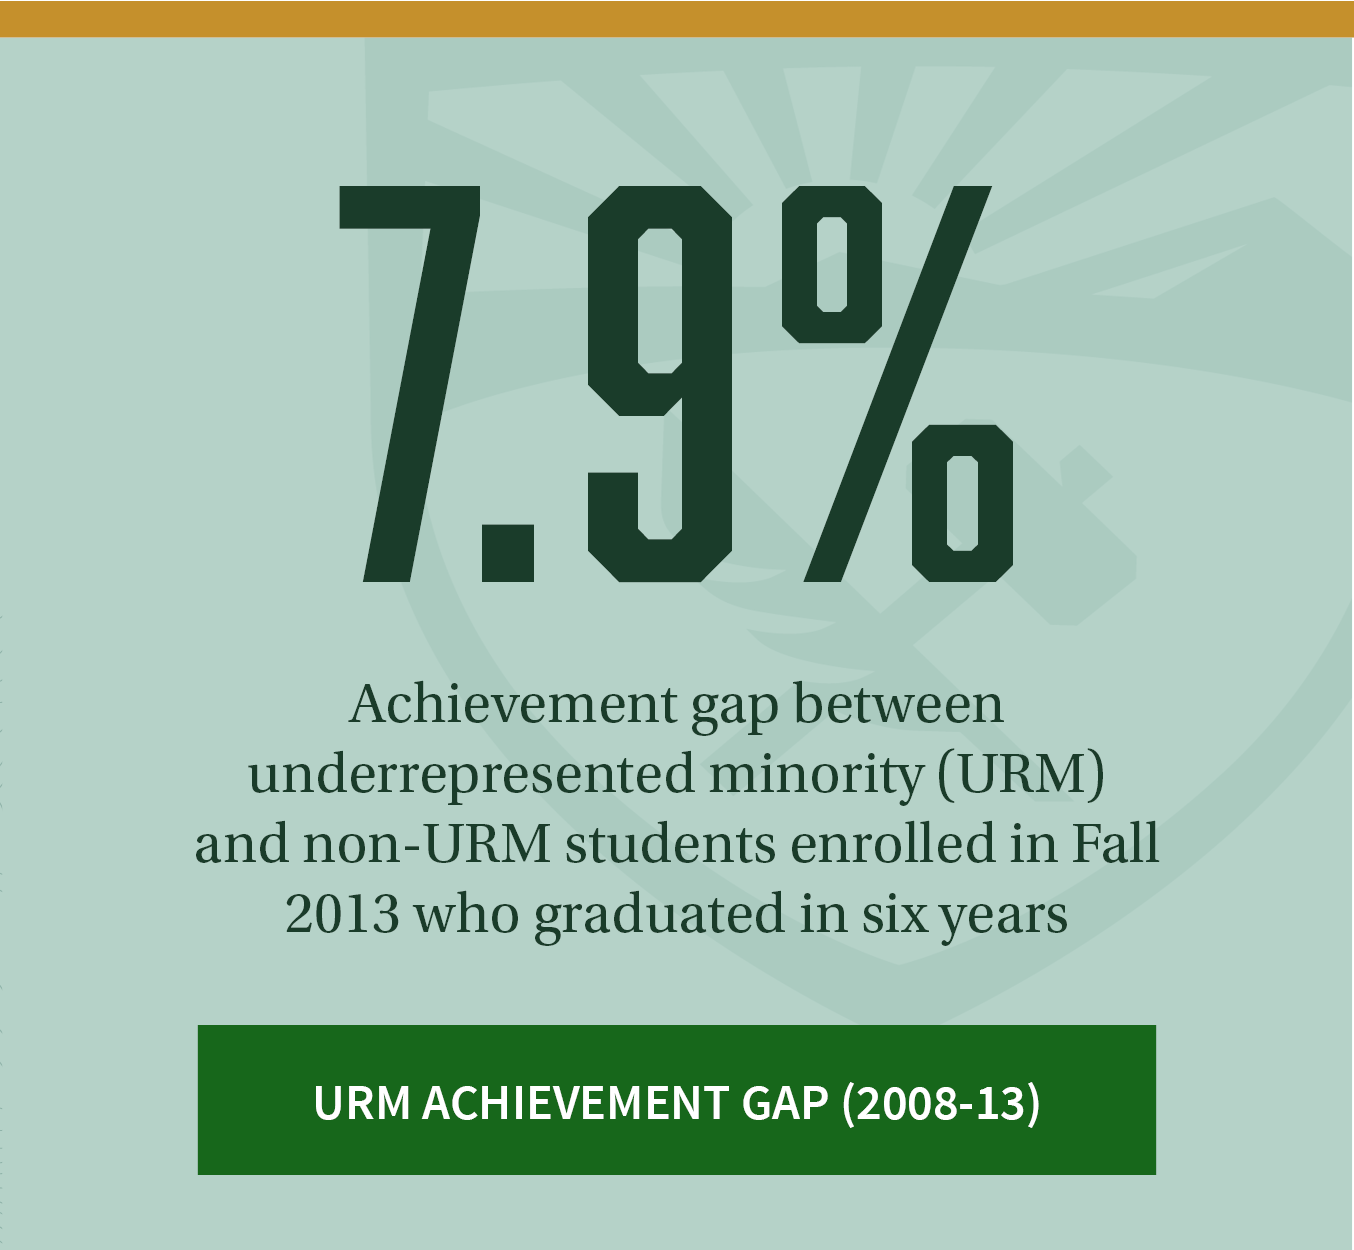 57.9%. Achievement gap between underrepresented (URM) and non-URM students enrolled in Fall 2013 who graduated in six years. Click to review additional URM achievement gap data between 2008-2013.